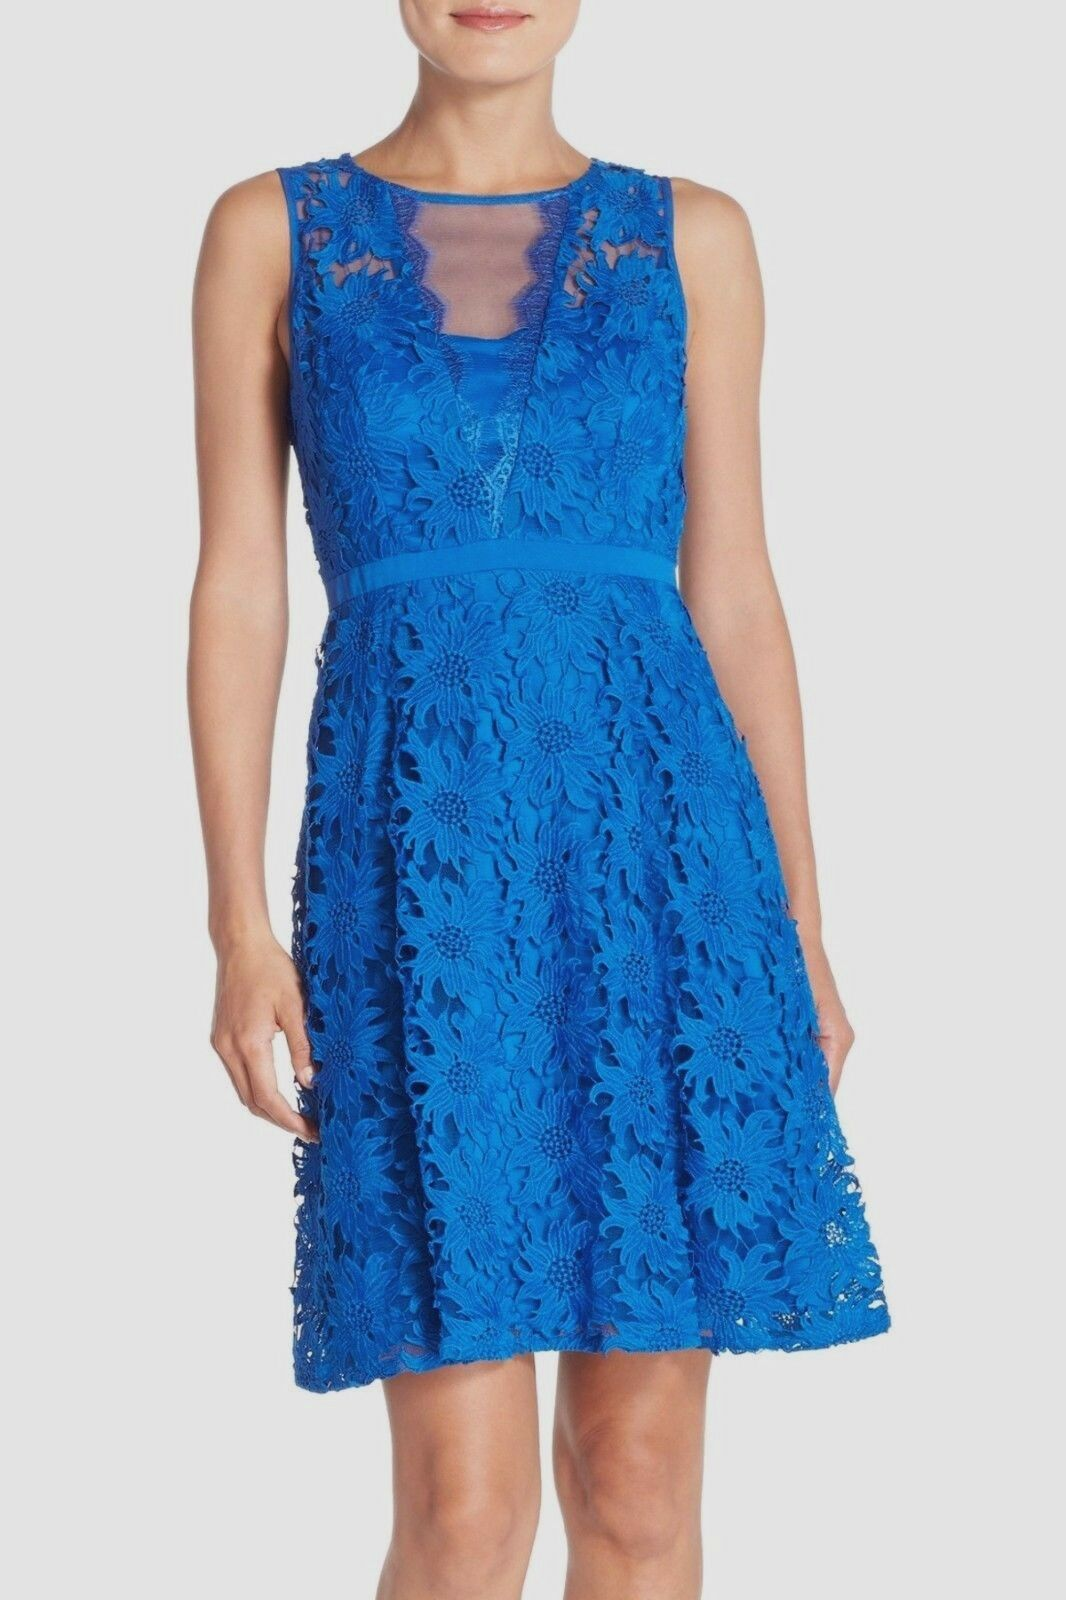 NWT Adrianna Papell Illusion Floral Lace Fit & Flare Dress Blau [SZ 12]  N570